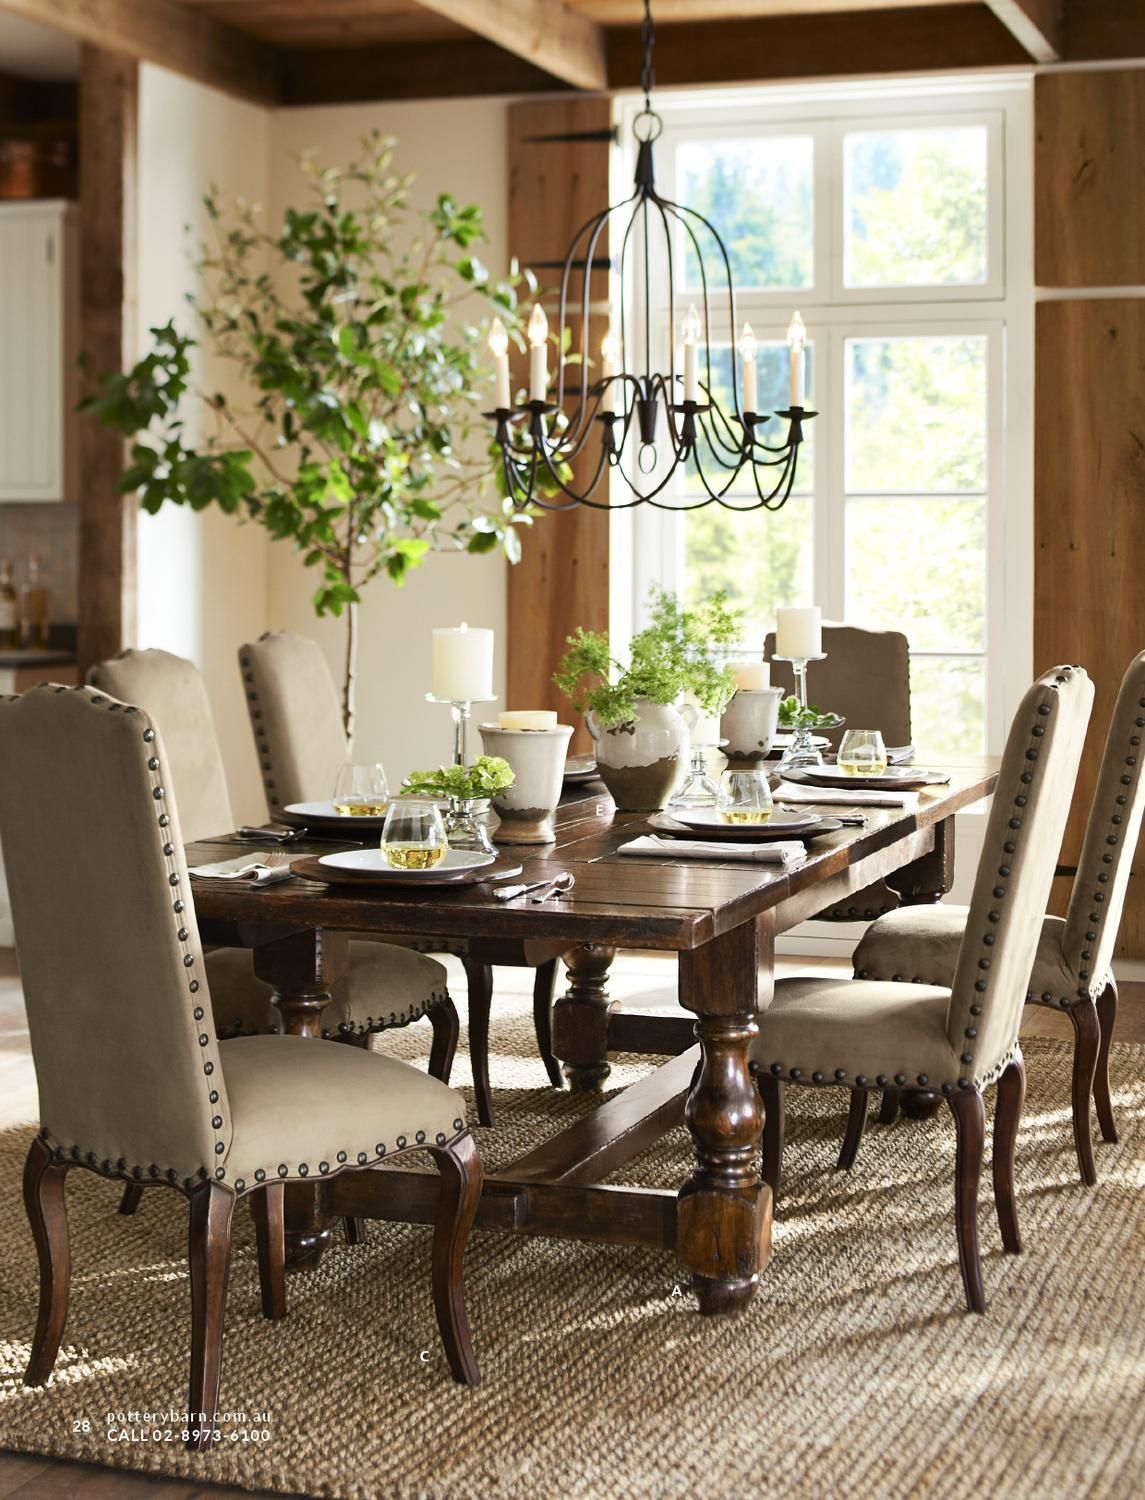 Pottery Barn Australia Summer 2013 Catalog Pottery Barn Dining Room Dining Room Design Dining Room Inspiration